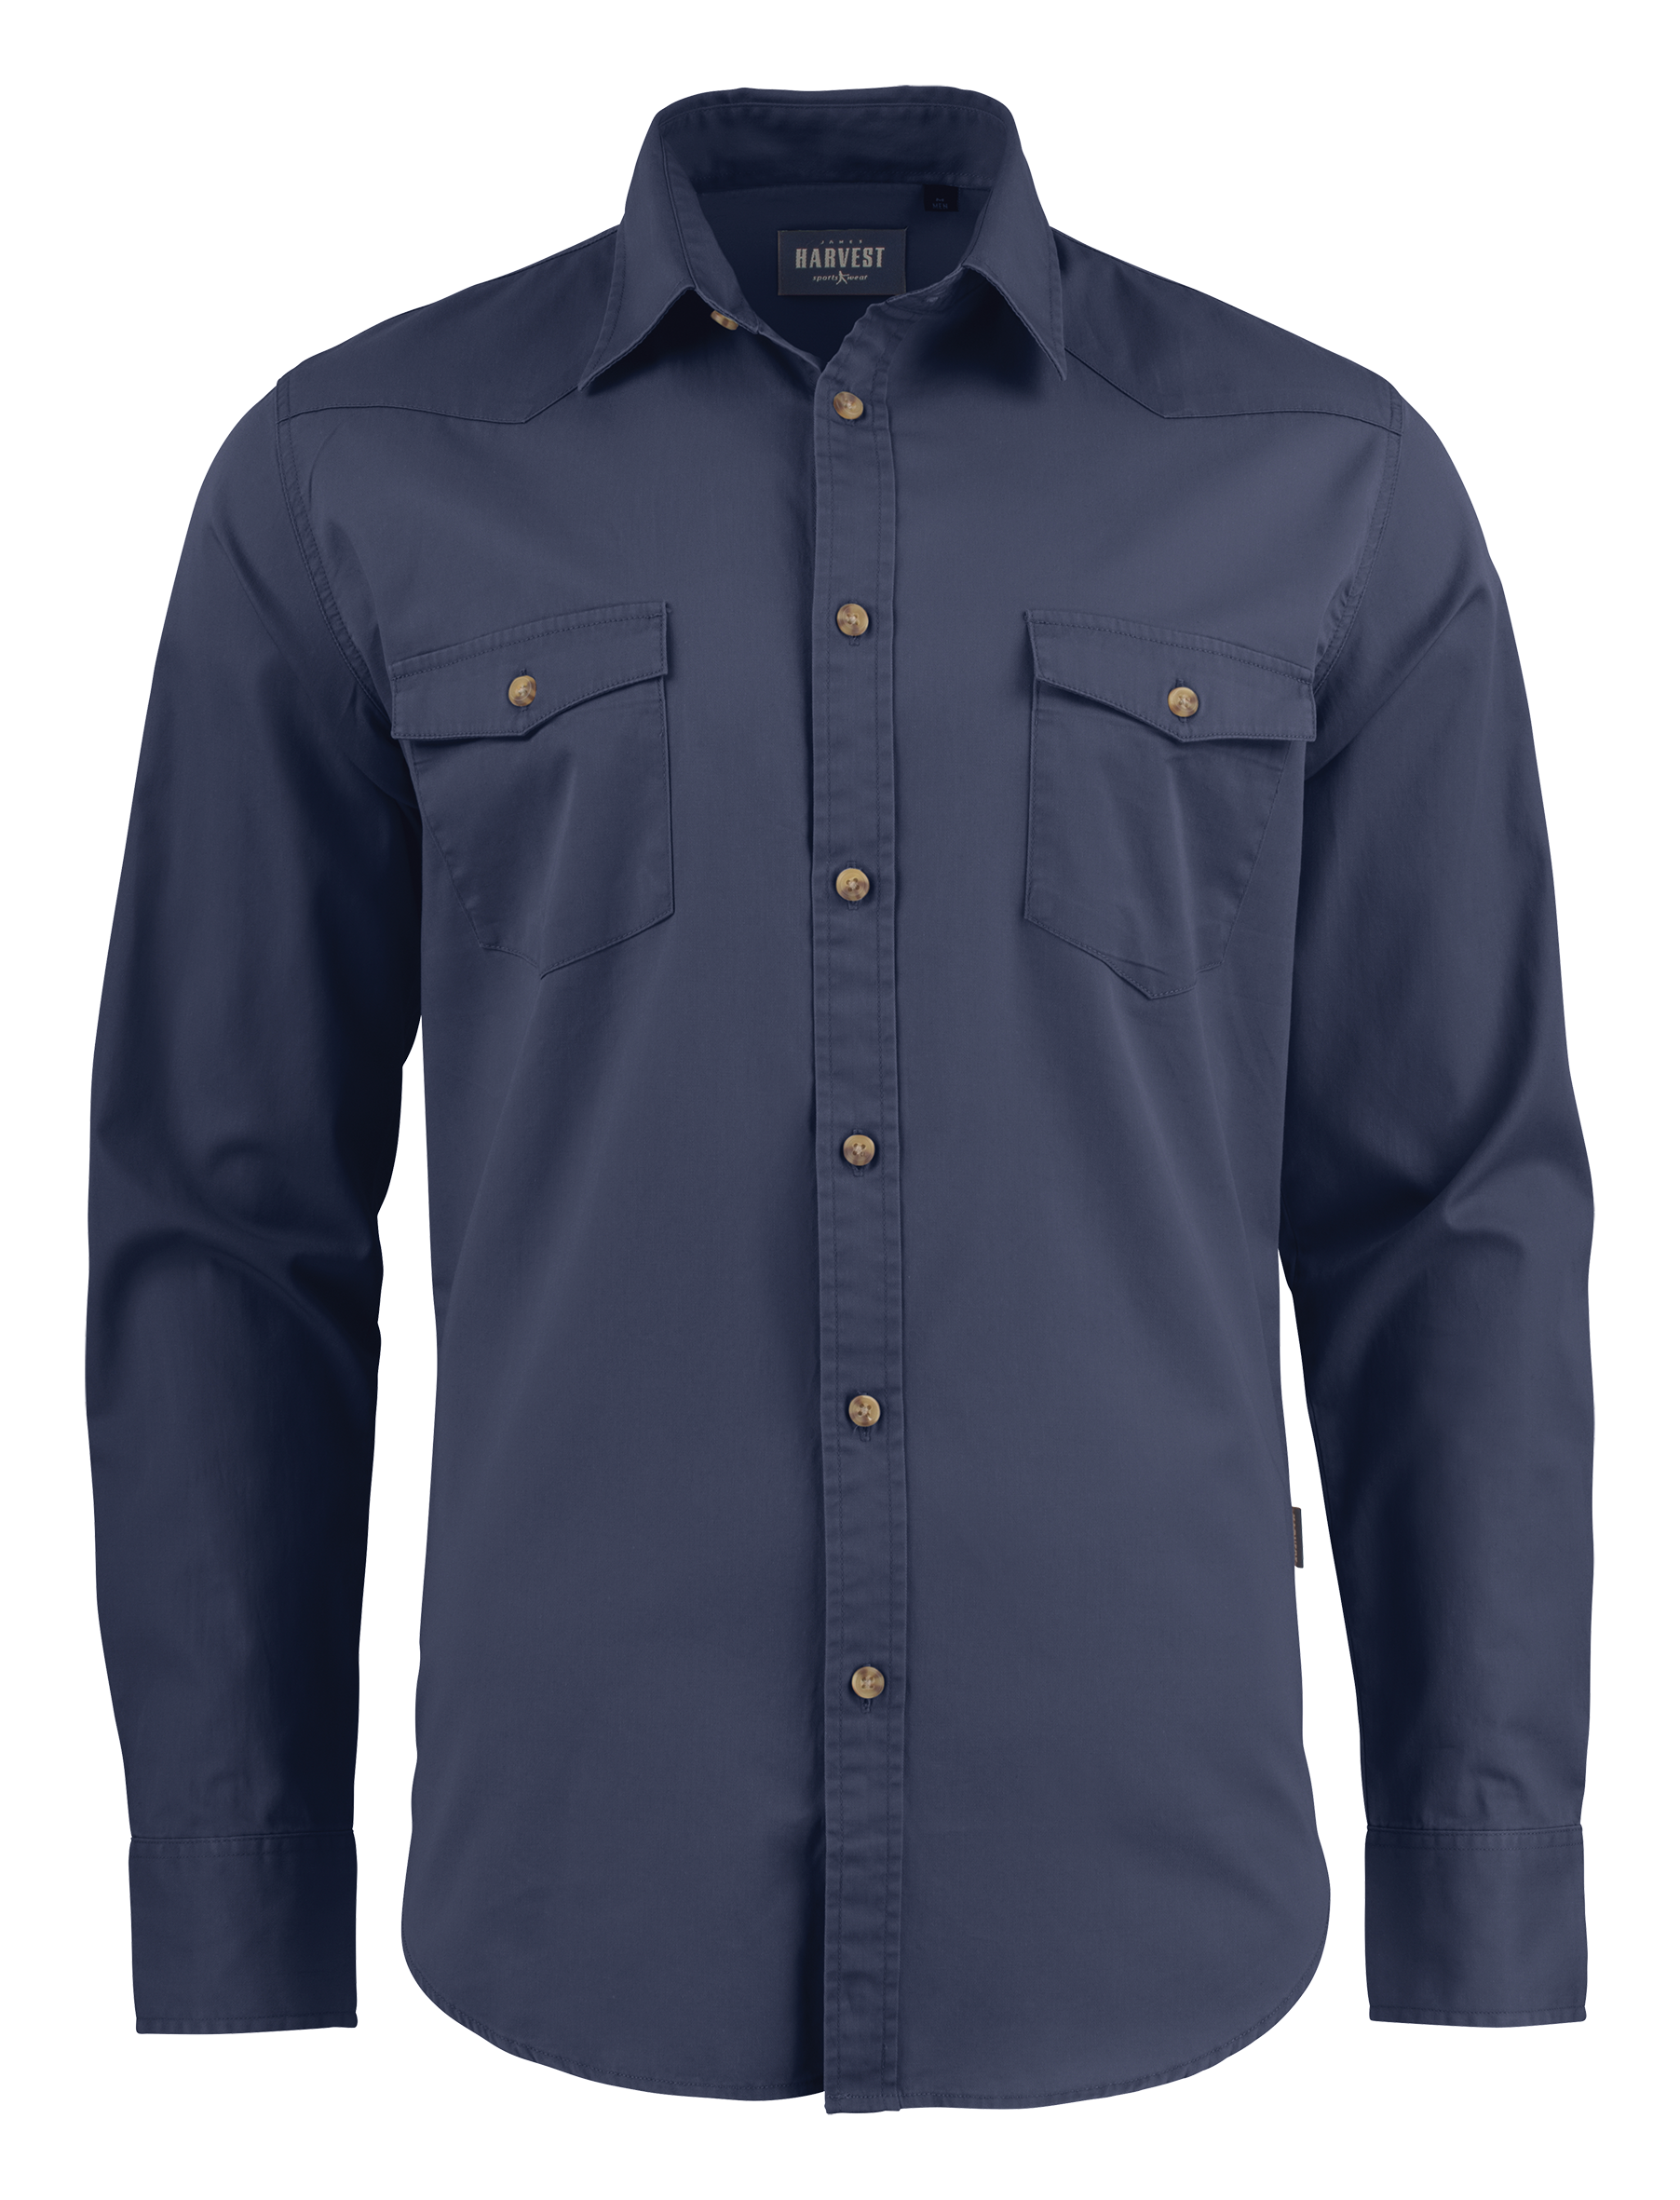 Unisex Treemore Shirt in Navy Blue